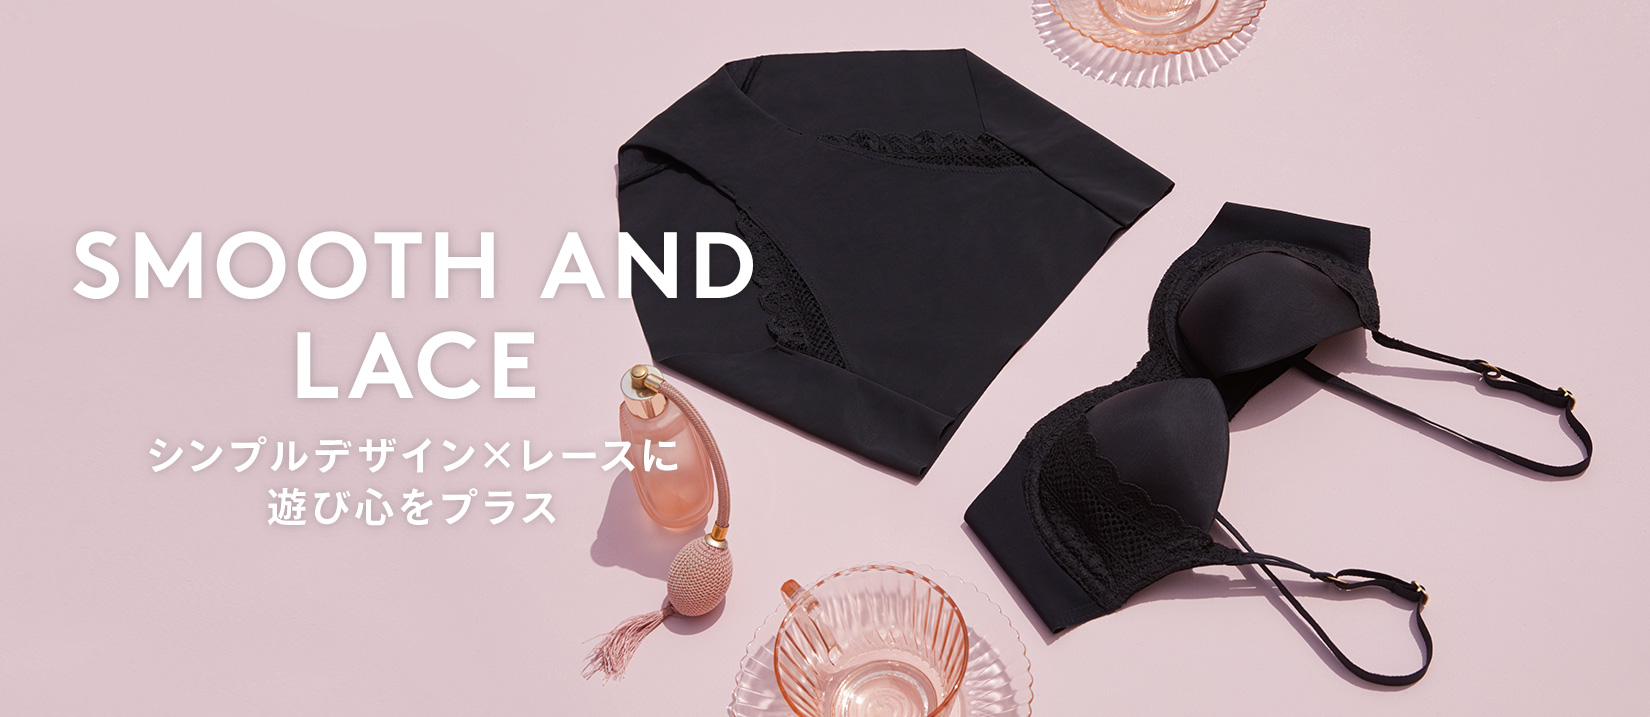 SMOOTH AND LACE(スムースアンドレース)